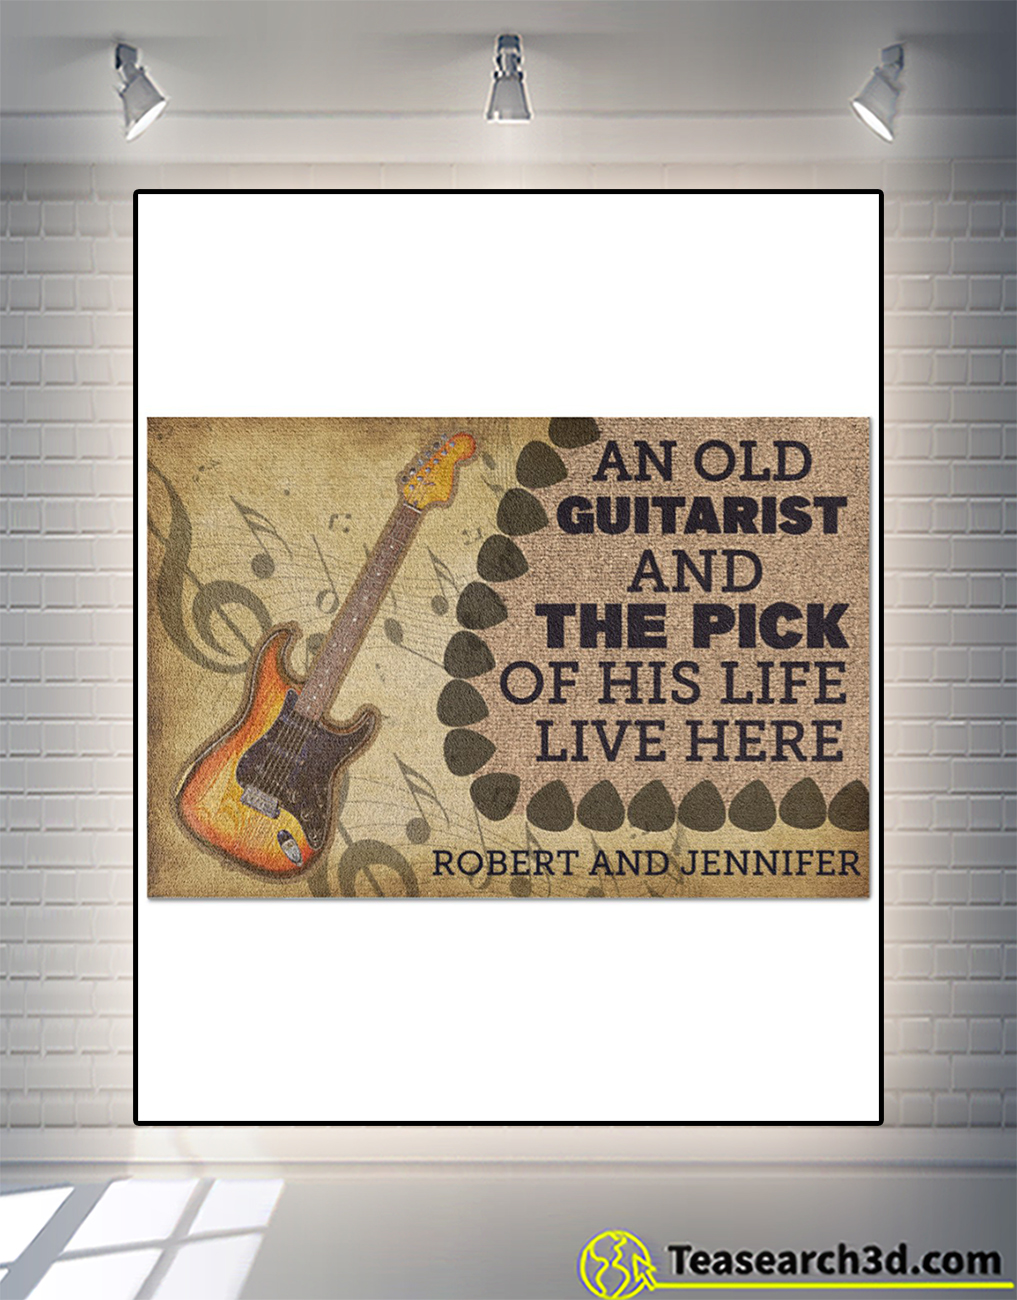 Personalized name An old guitarist and the pick of his life live here doormat